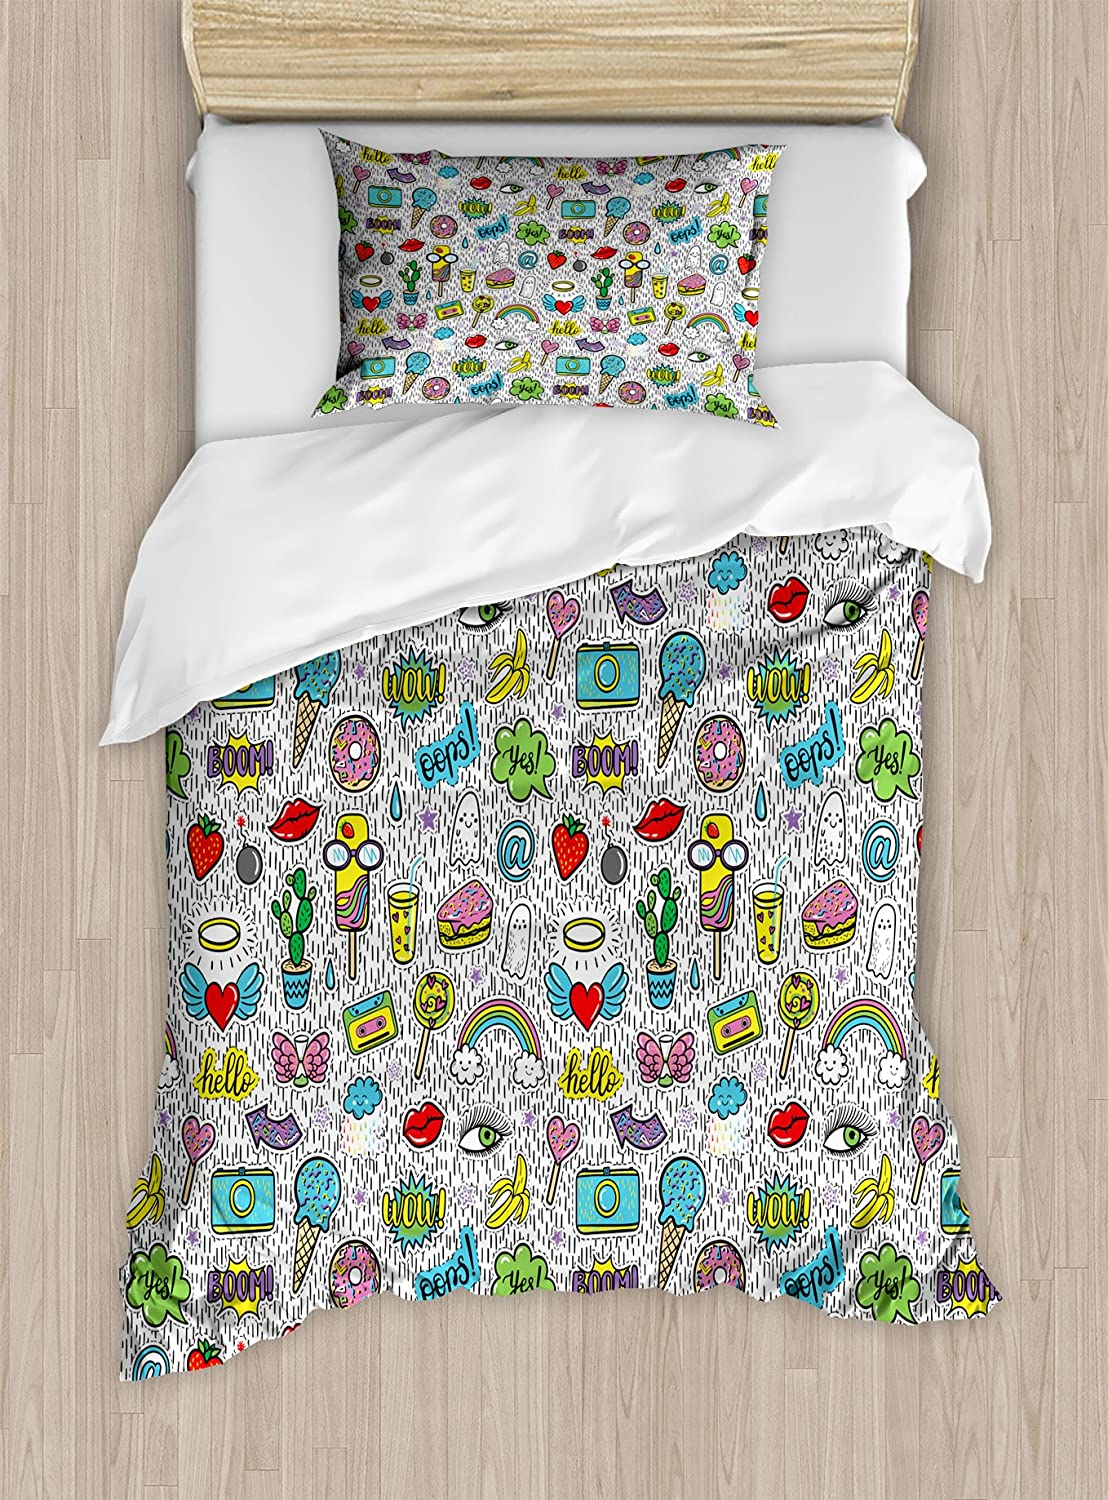 Ambesonne Emoji Duvet Cover Set, Pop Art Hand Drawn Cartoon Style Eye Ice Cream Rainbow Donut Lip Heart Banana Ghost, Decorative 2 Piece Bedding Set with 1 Pillow Sham, Twin Size, Grey White